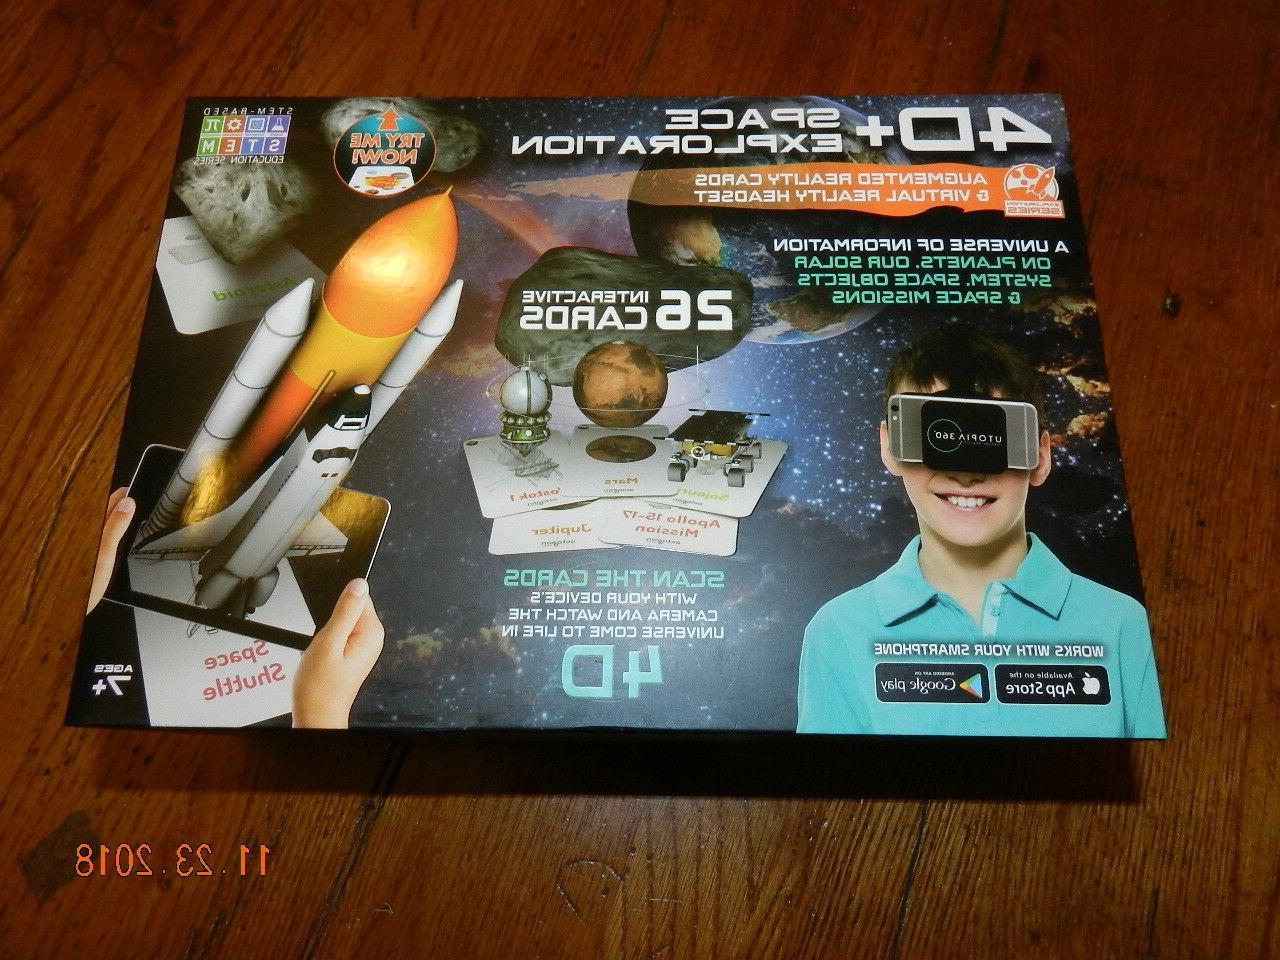 new 4d space exploration augmented reality cards